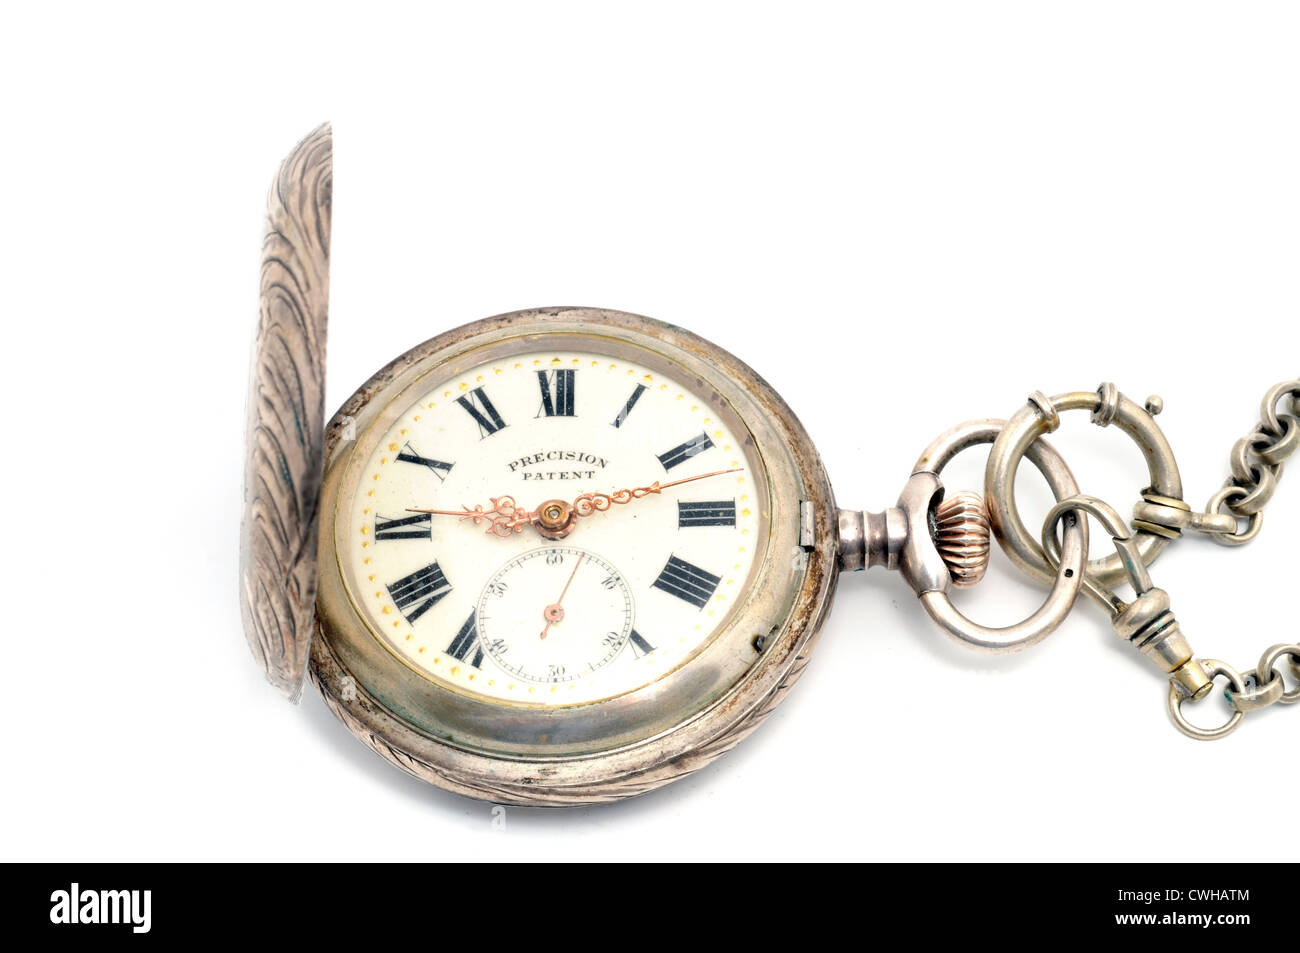 Old pocket watch in front of a white background Stock Photo